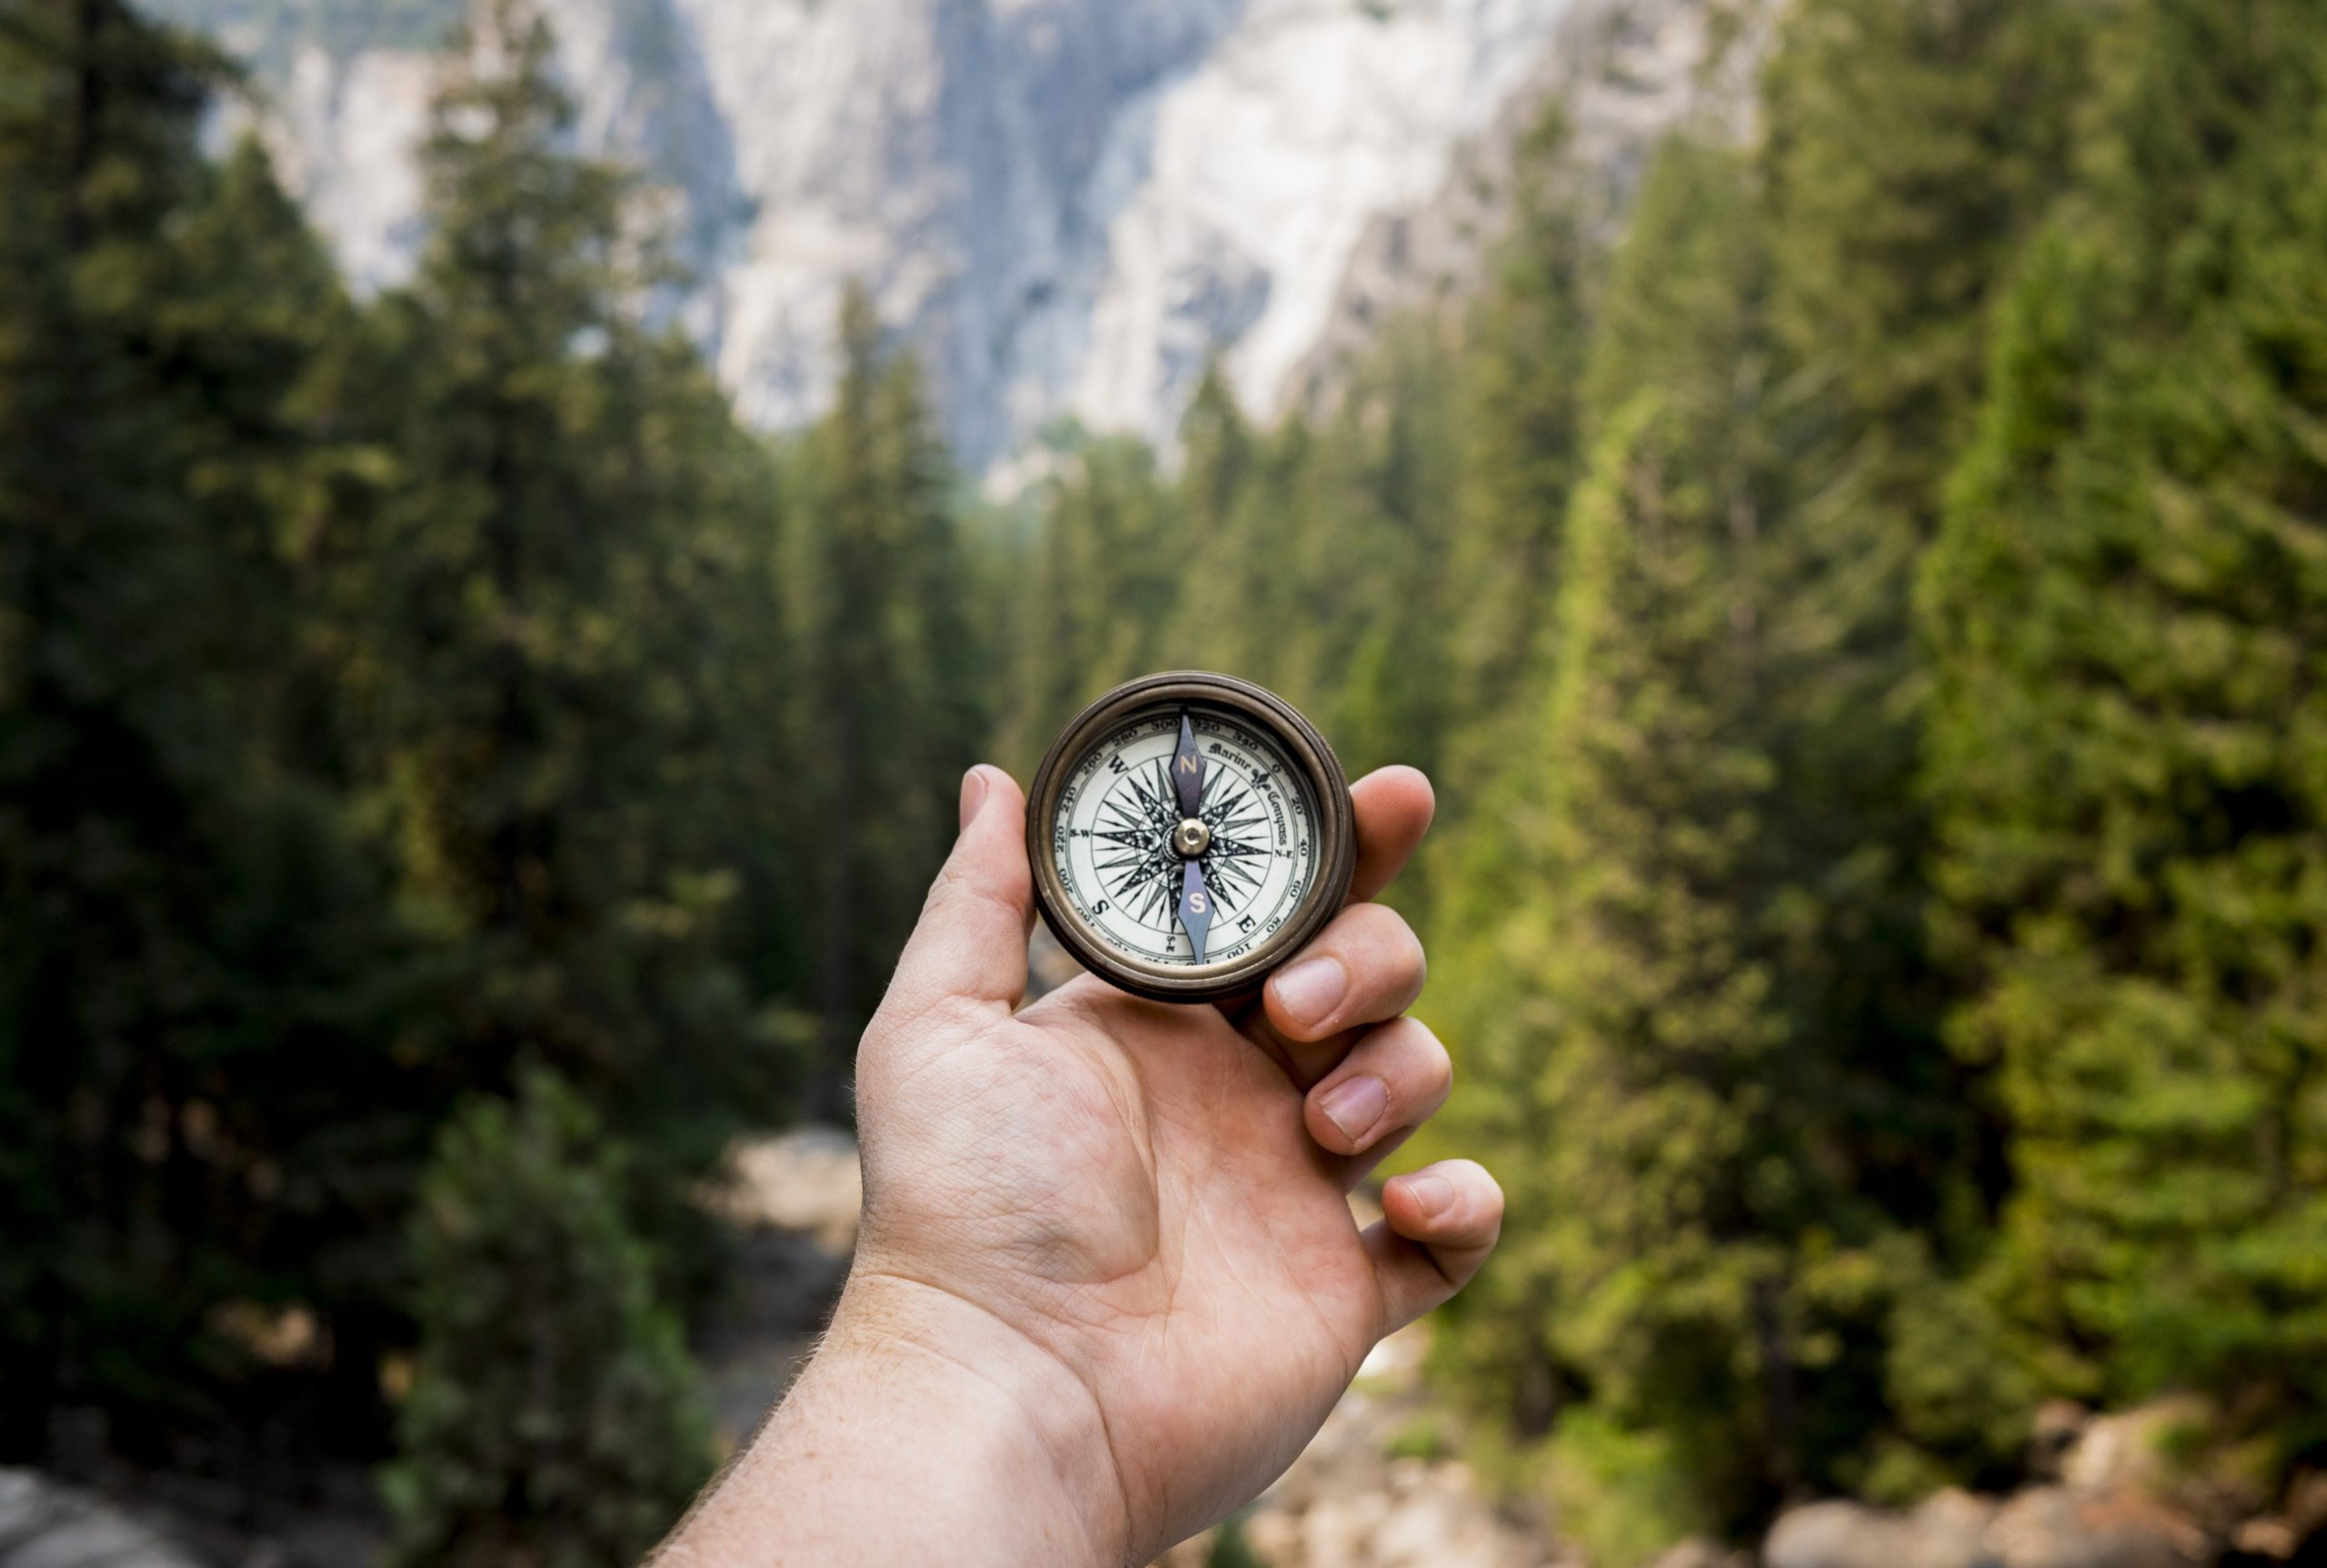 hand holding a compass in a forest cant get a loan anywhere